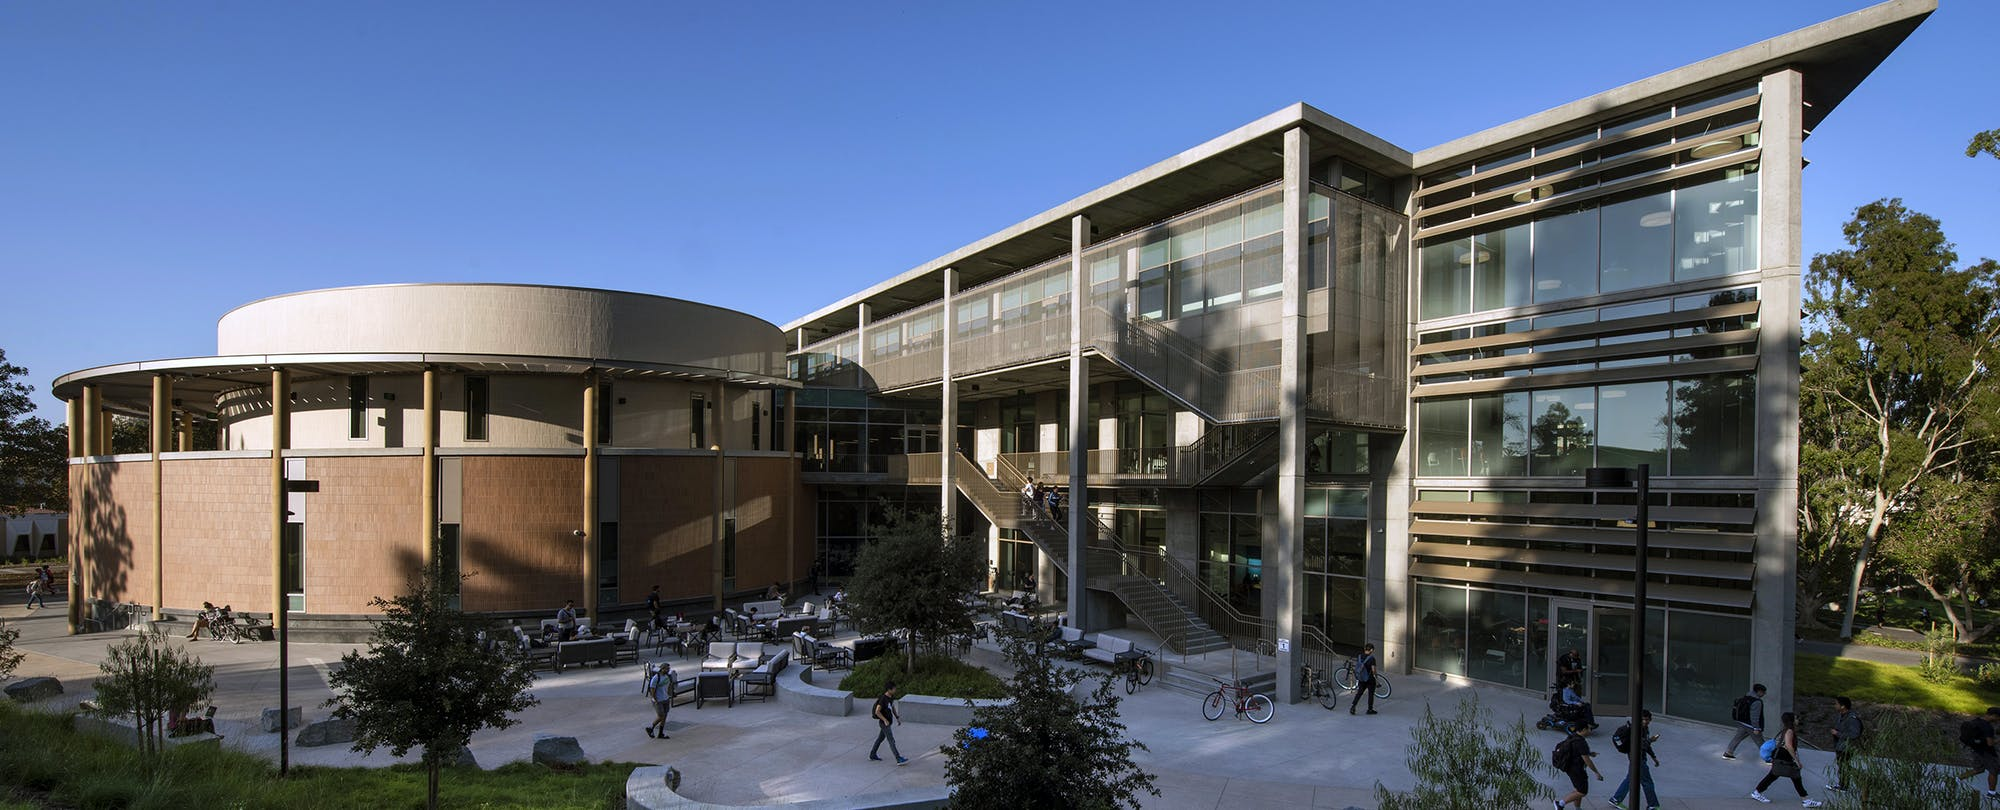 Can Space Activate Learning? UC Irvine Seeks to Find Out With $67M Teaching Facility